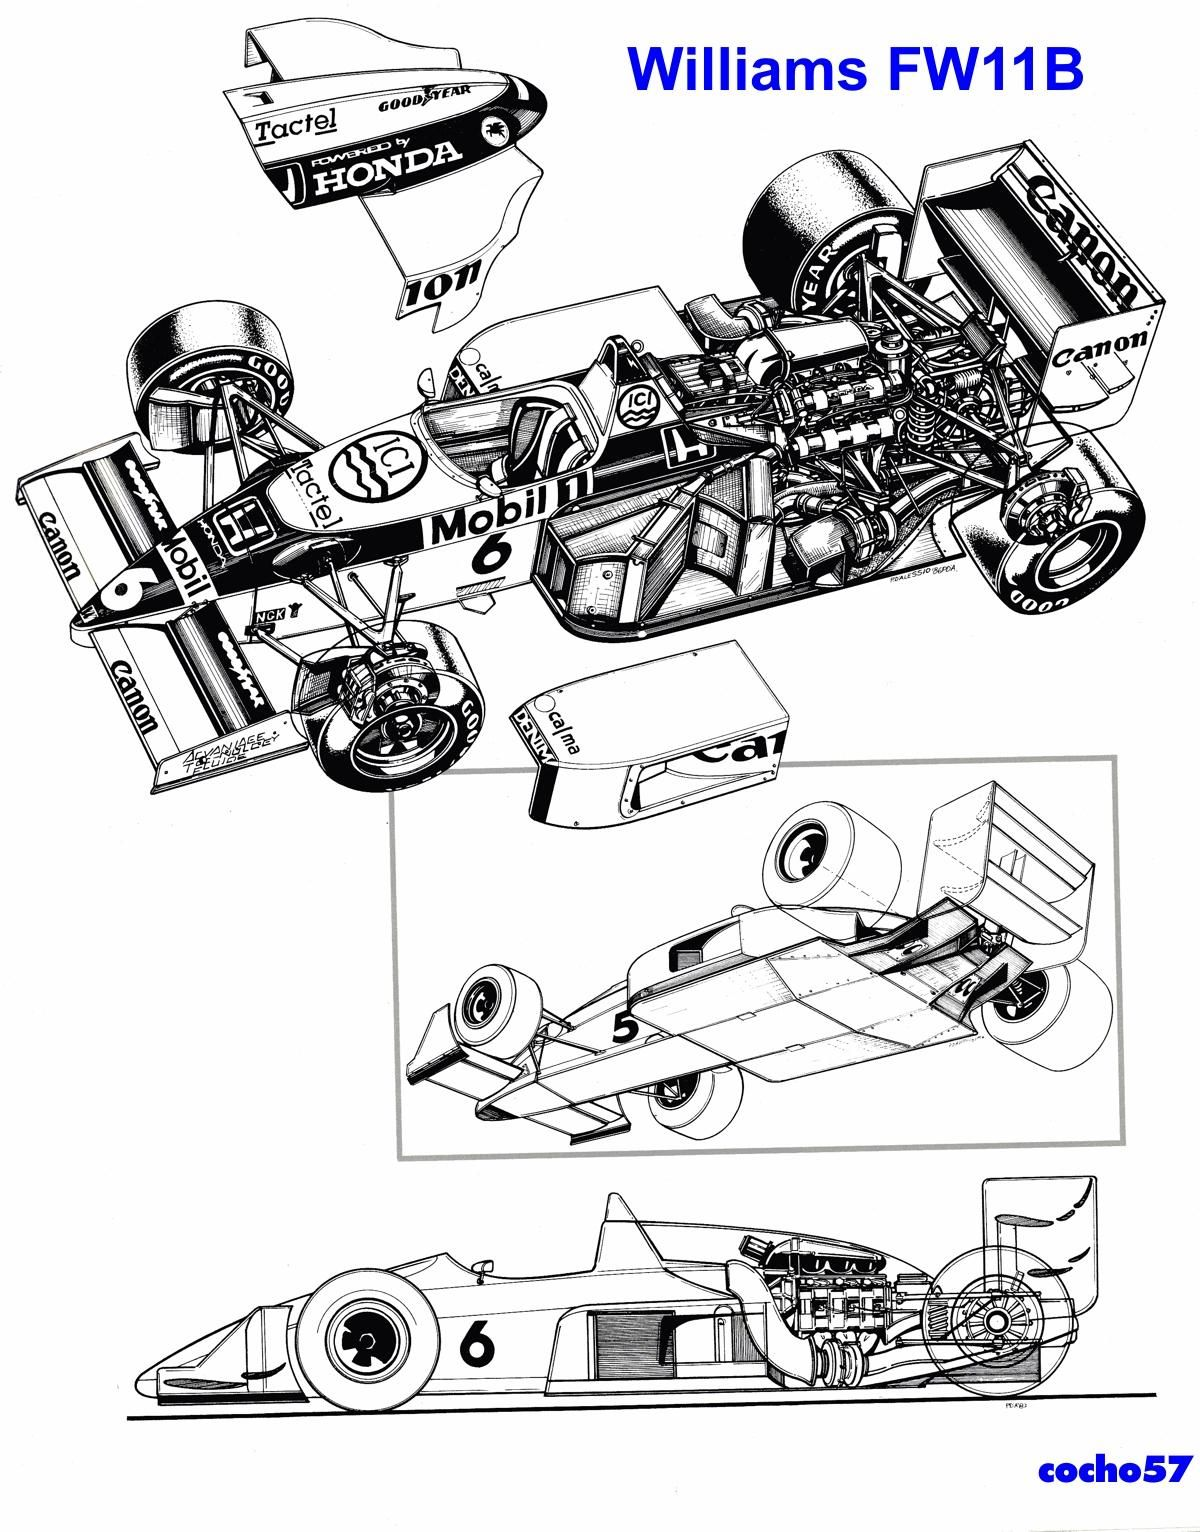 Williams Fw 11b Honda Disenopatrick Head Sergio